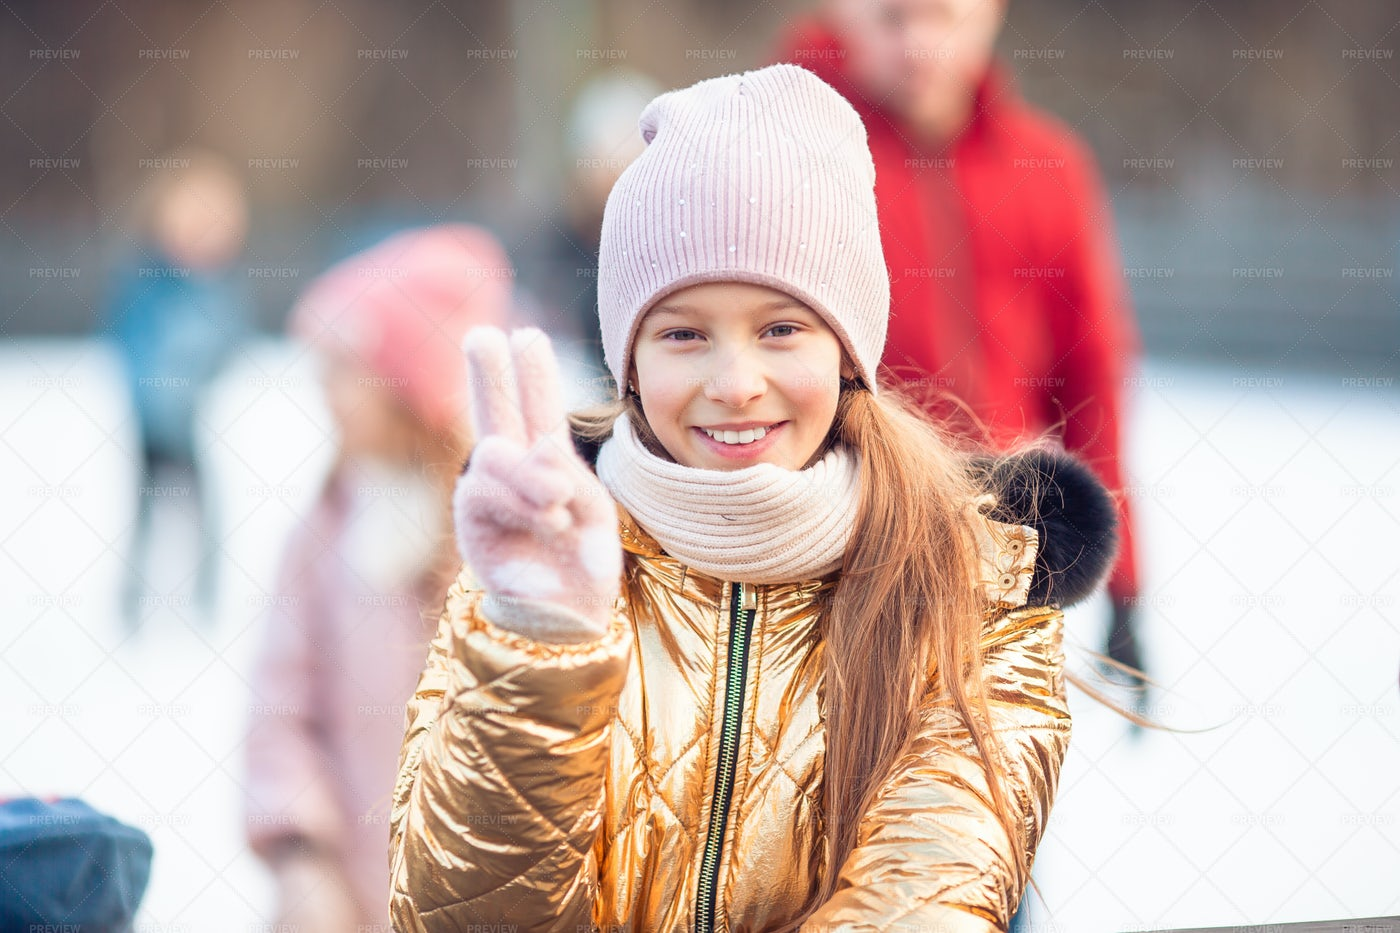 Peace Sign On Ice Rink: Stock Photos